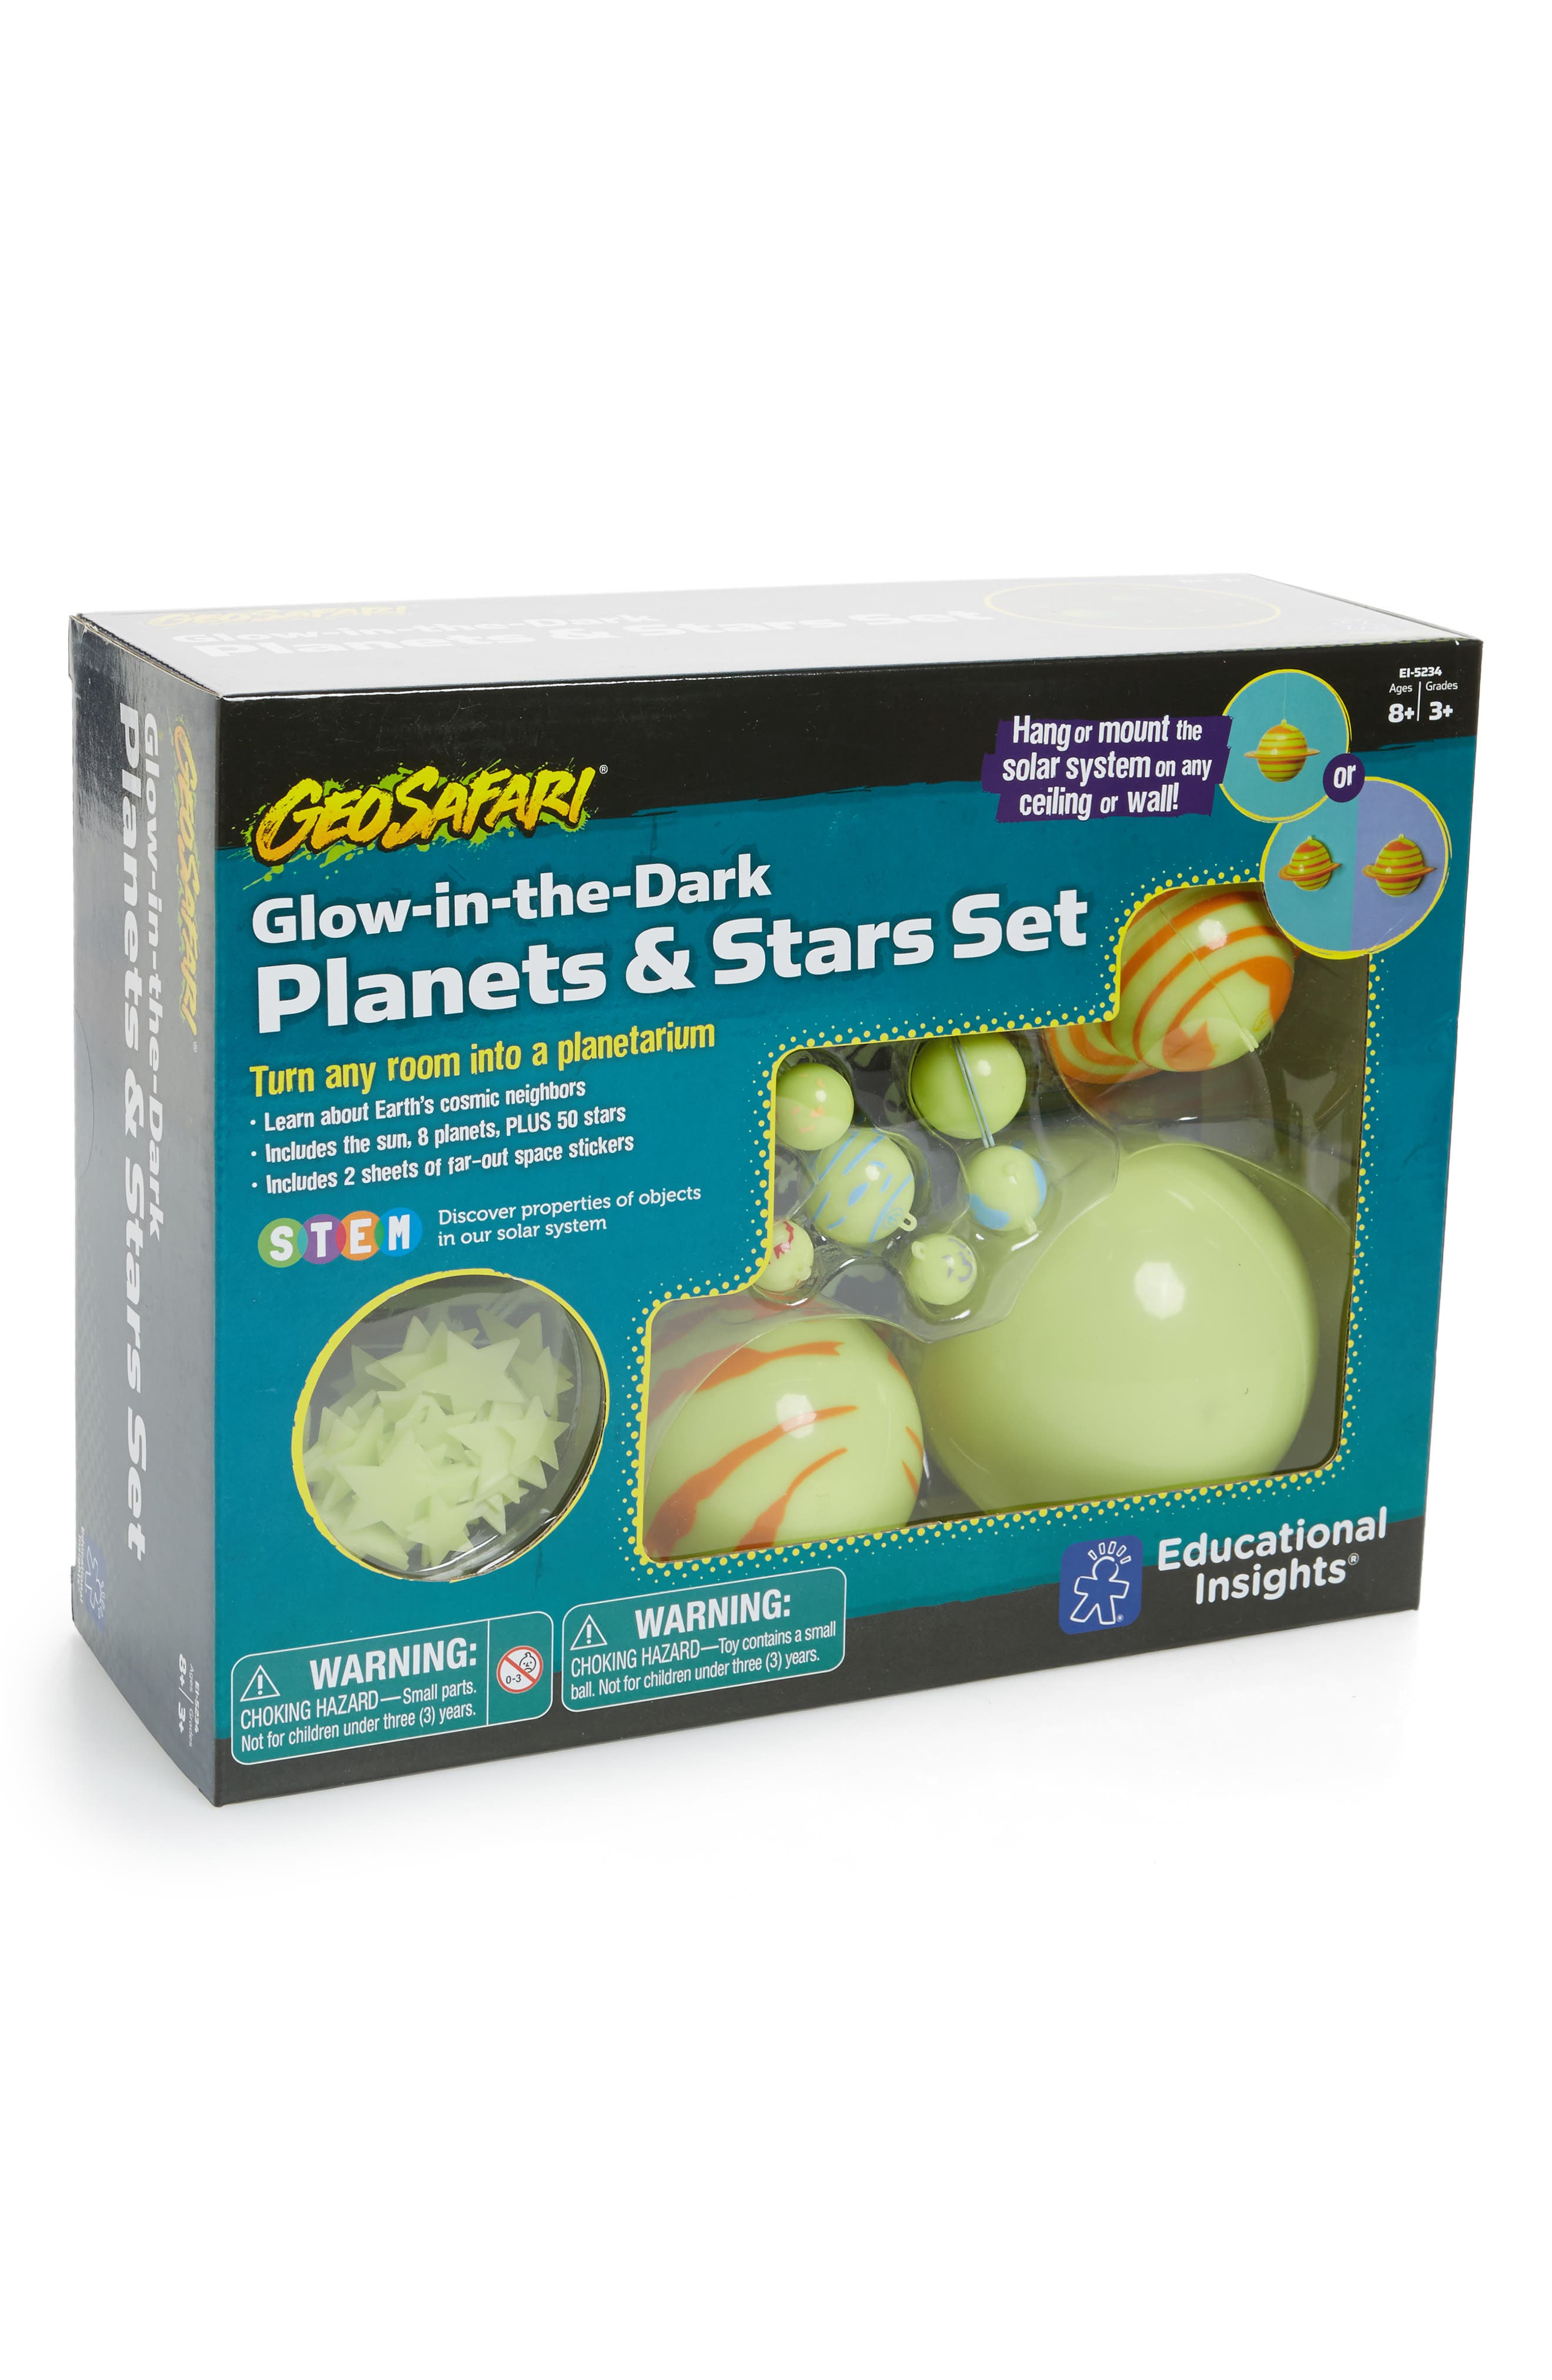 59-Piece Glow in the Dark Planets & Stars Set,                             Main thumbnail 1, color,                             Green